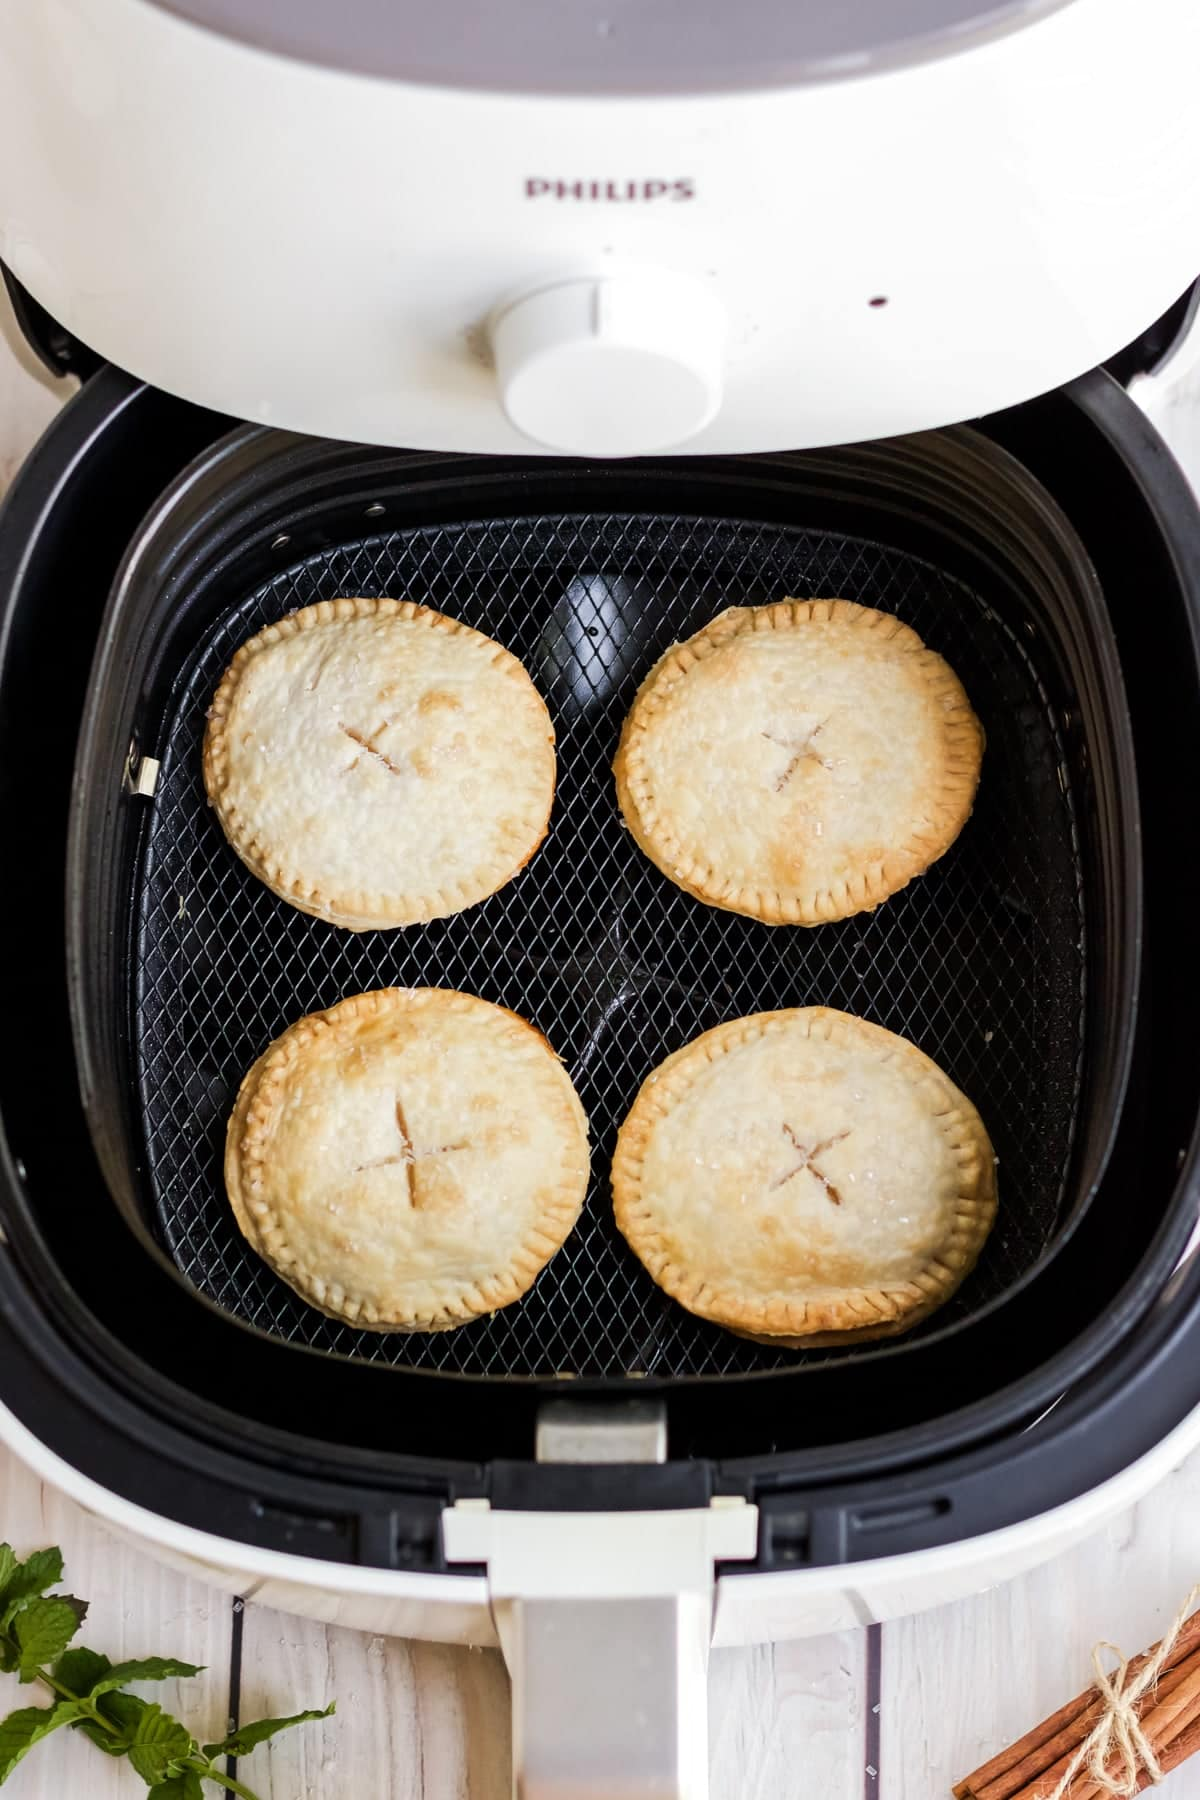 Apple Hand Pies being cooked in the air fryer